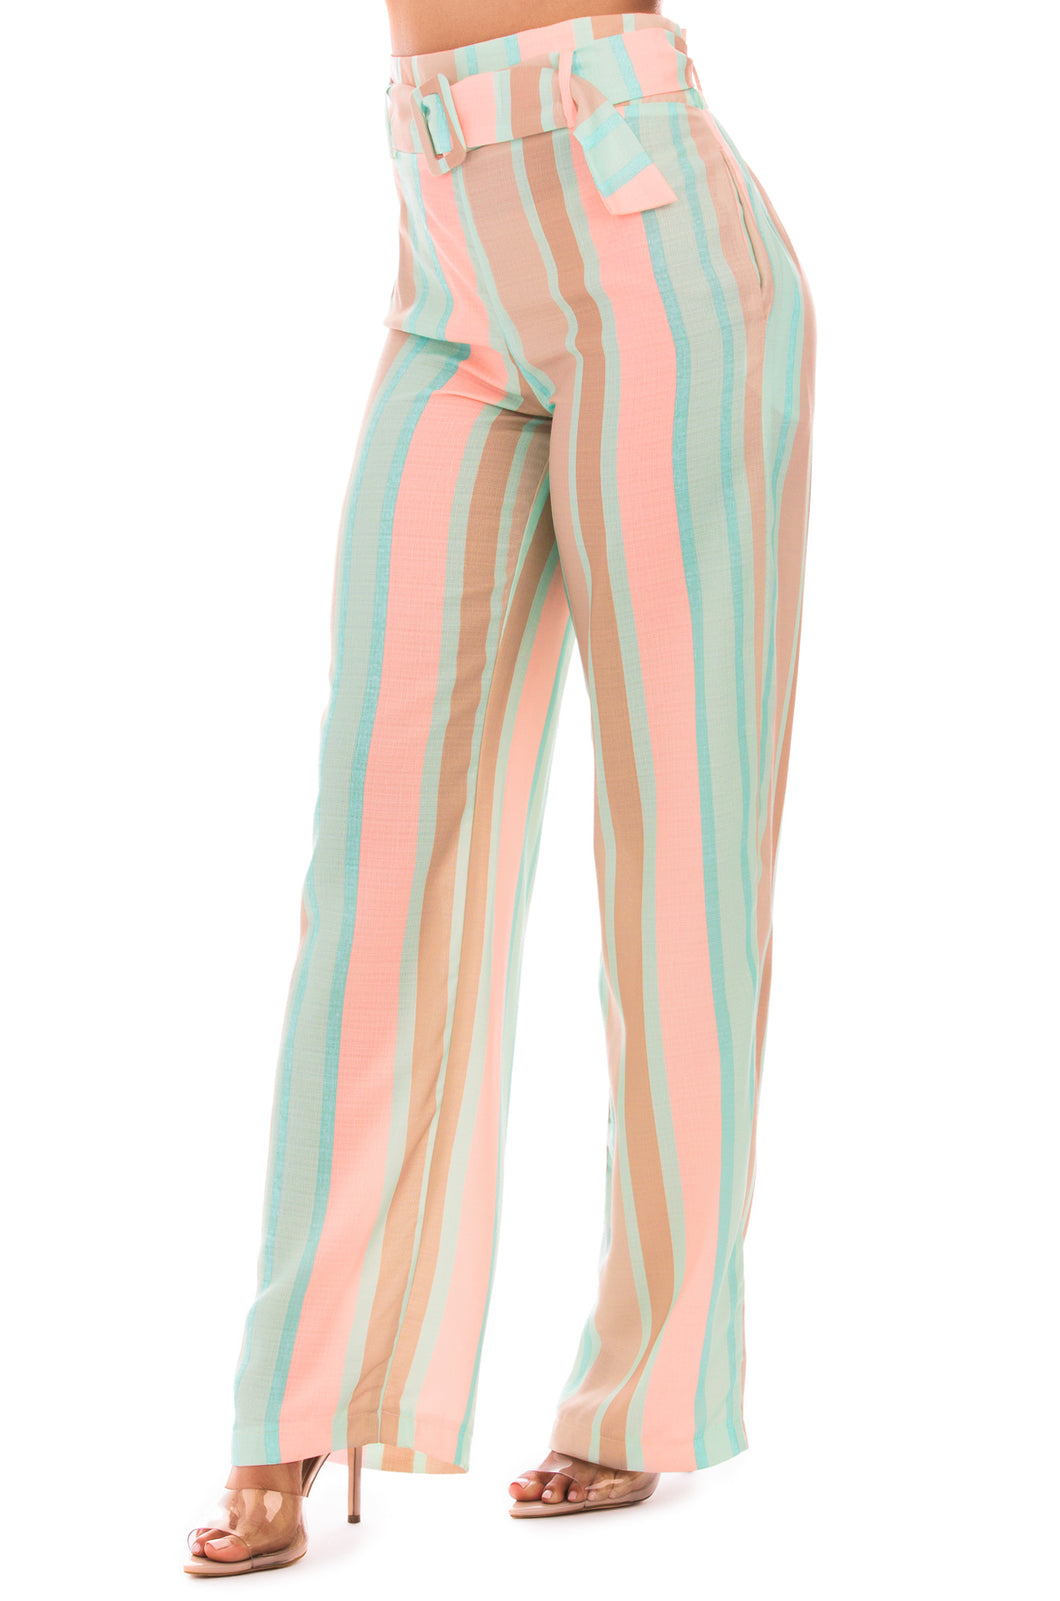 Chic Travels Pant - Multi Stripe